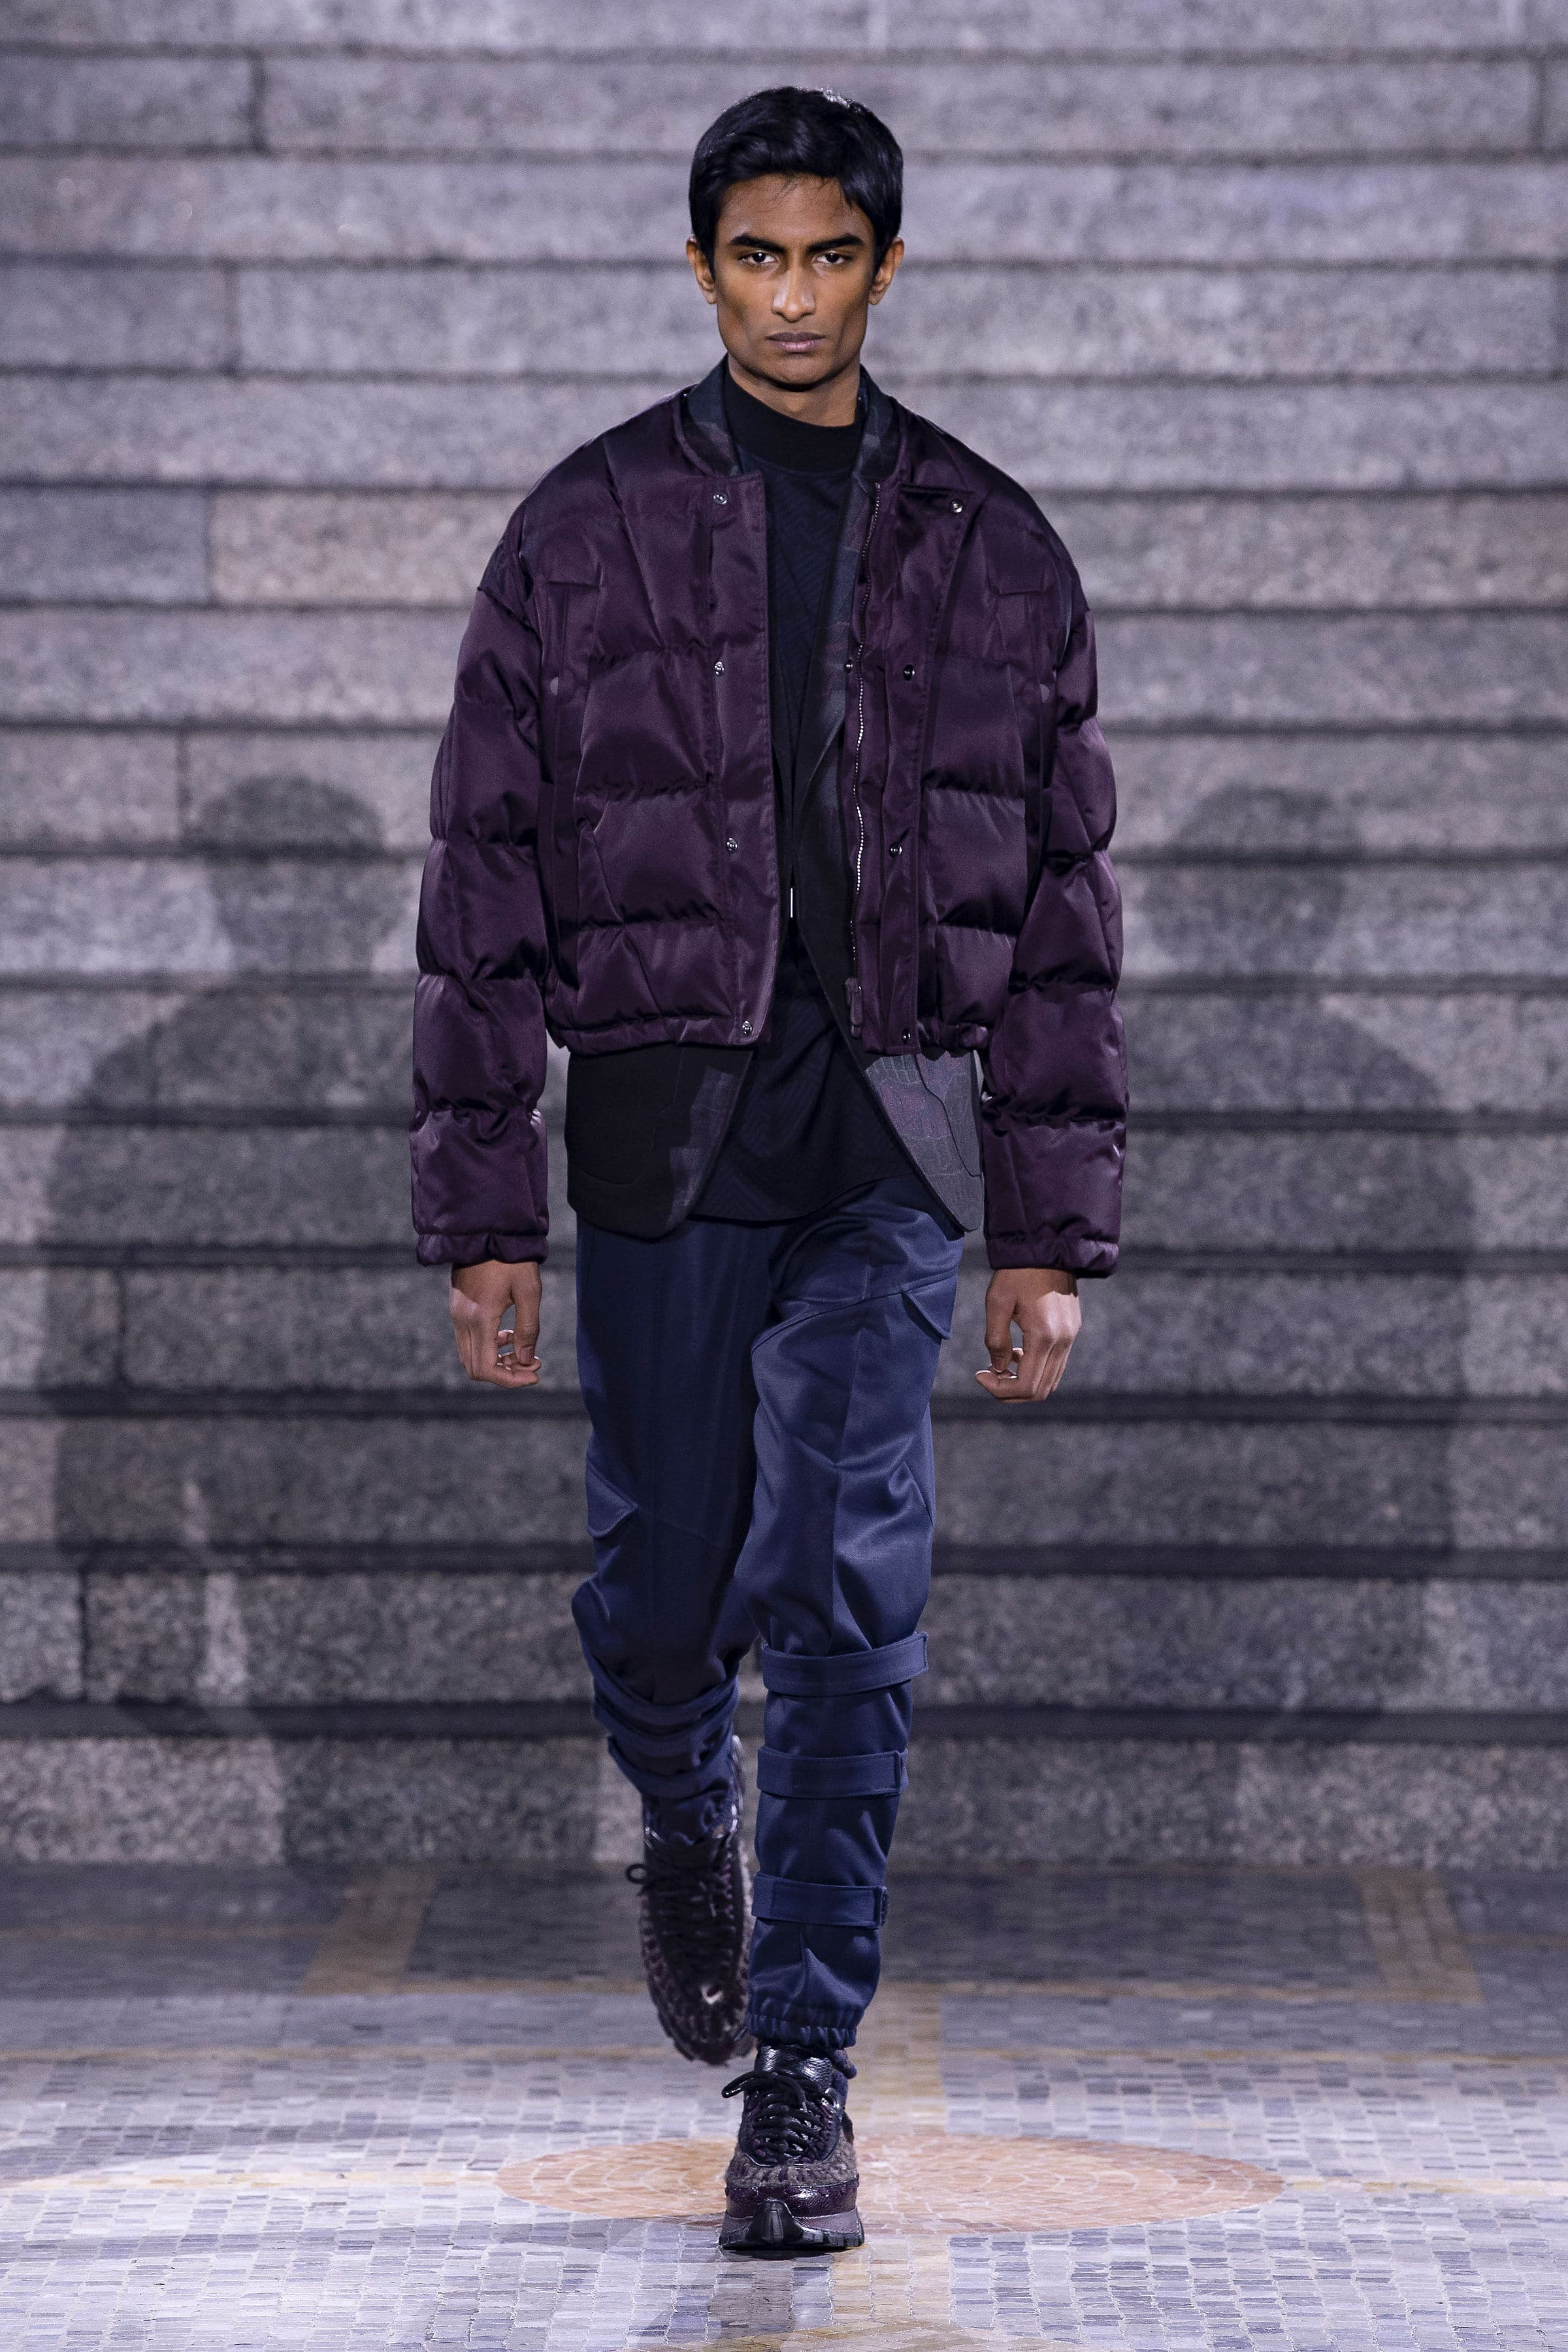 Over-sized purple gilet jacket worn over navy trousers and punk-rock themed boots.